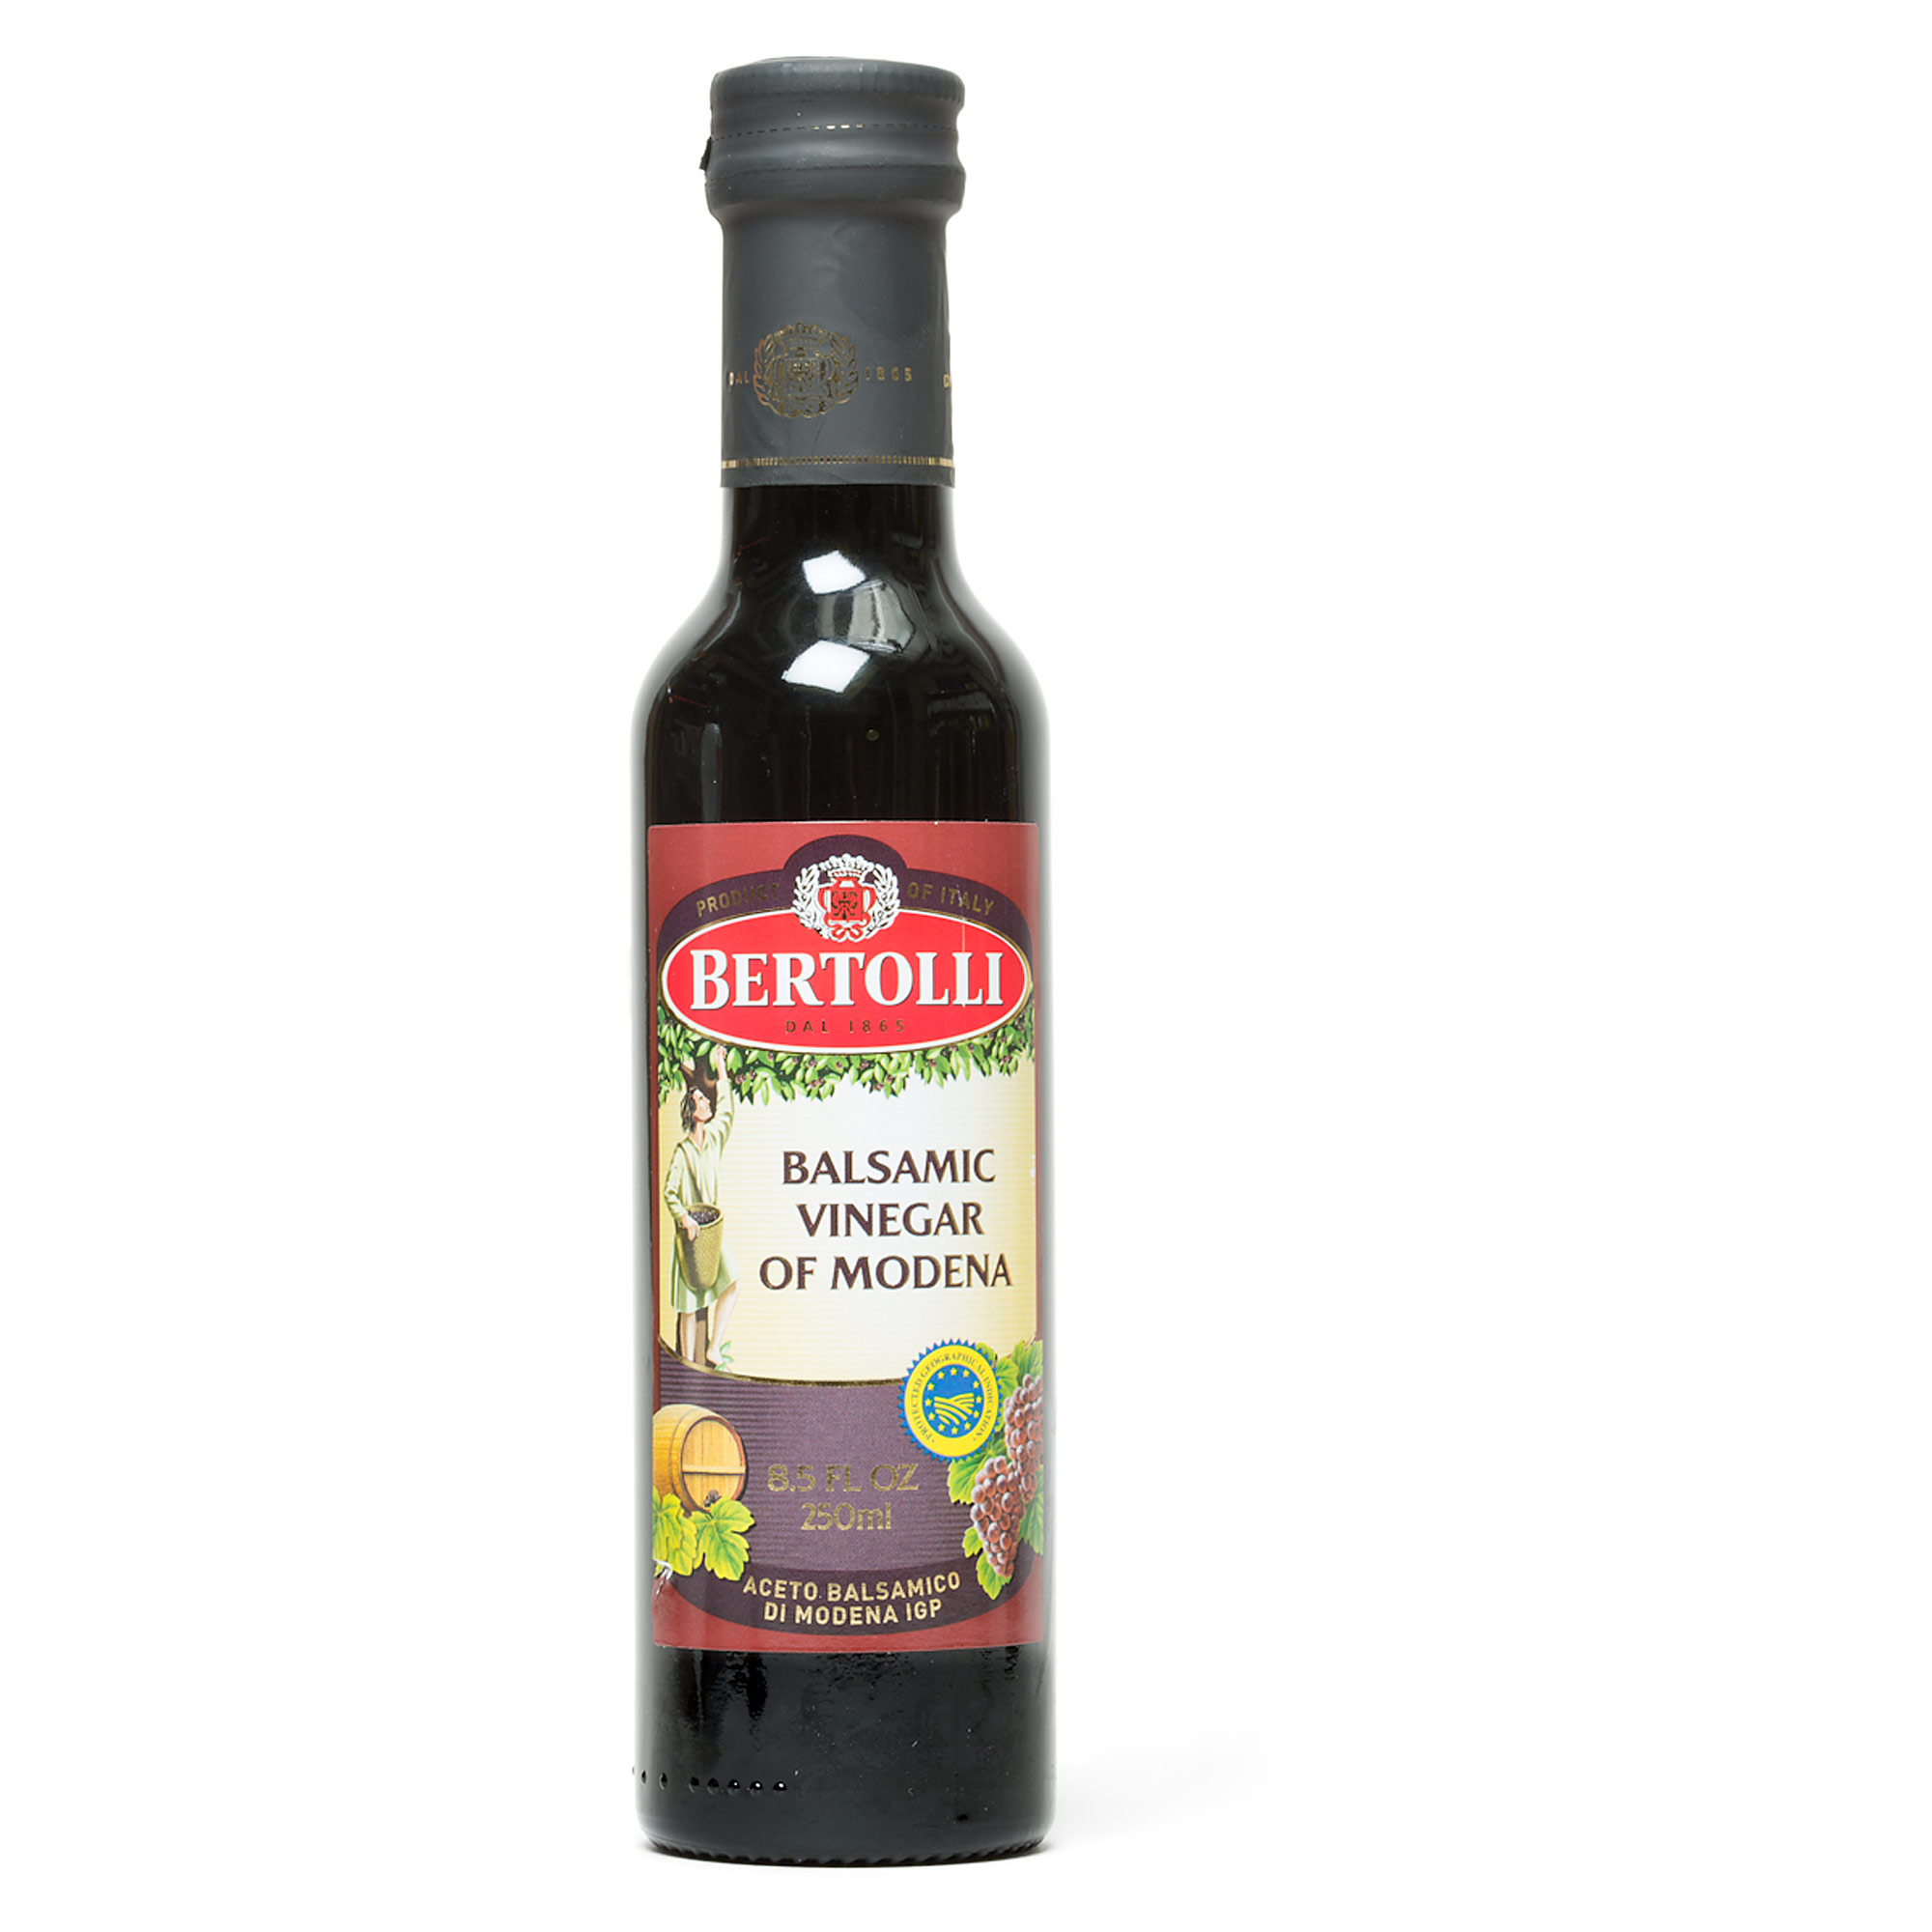 SILBalsamic20VinegarBertolli20Balsamic20Vinegar20of